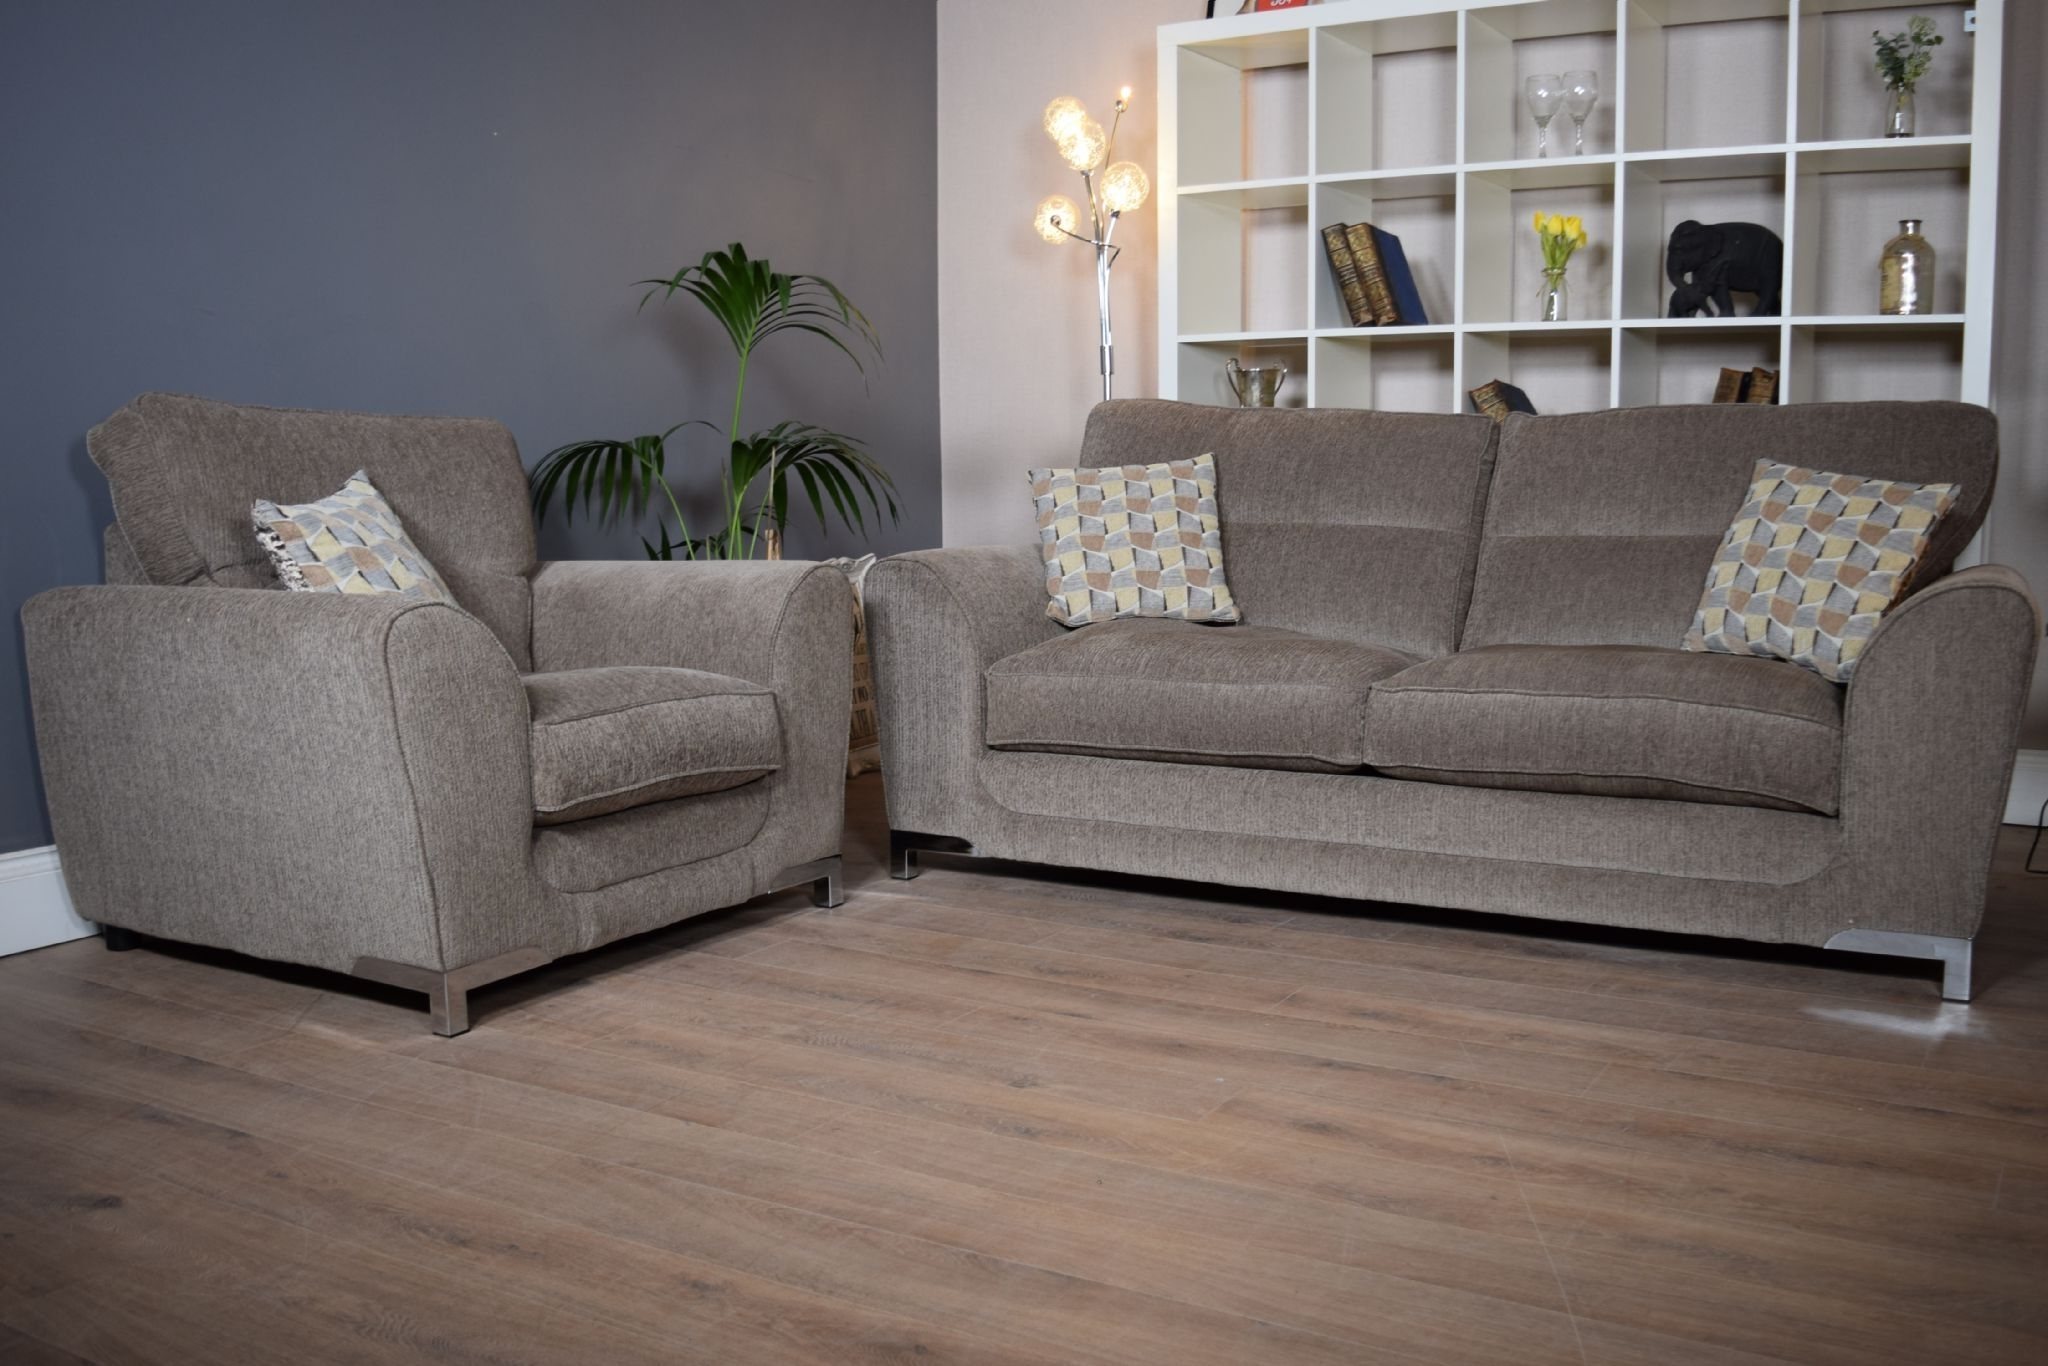 Most Recent Set Nikki 3 Seater Sofa & Cuddle Chair Suite Set – Mocha Grey With Regard To 3 Seater Sofas And Cuddle Chairs (View 14 of 20)